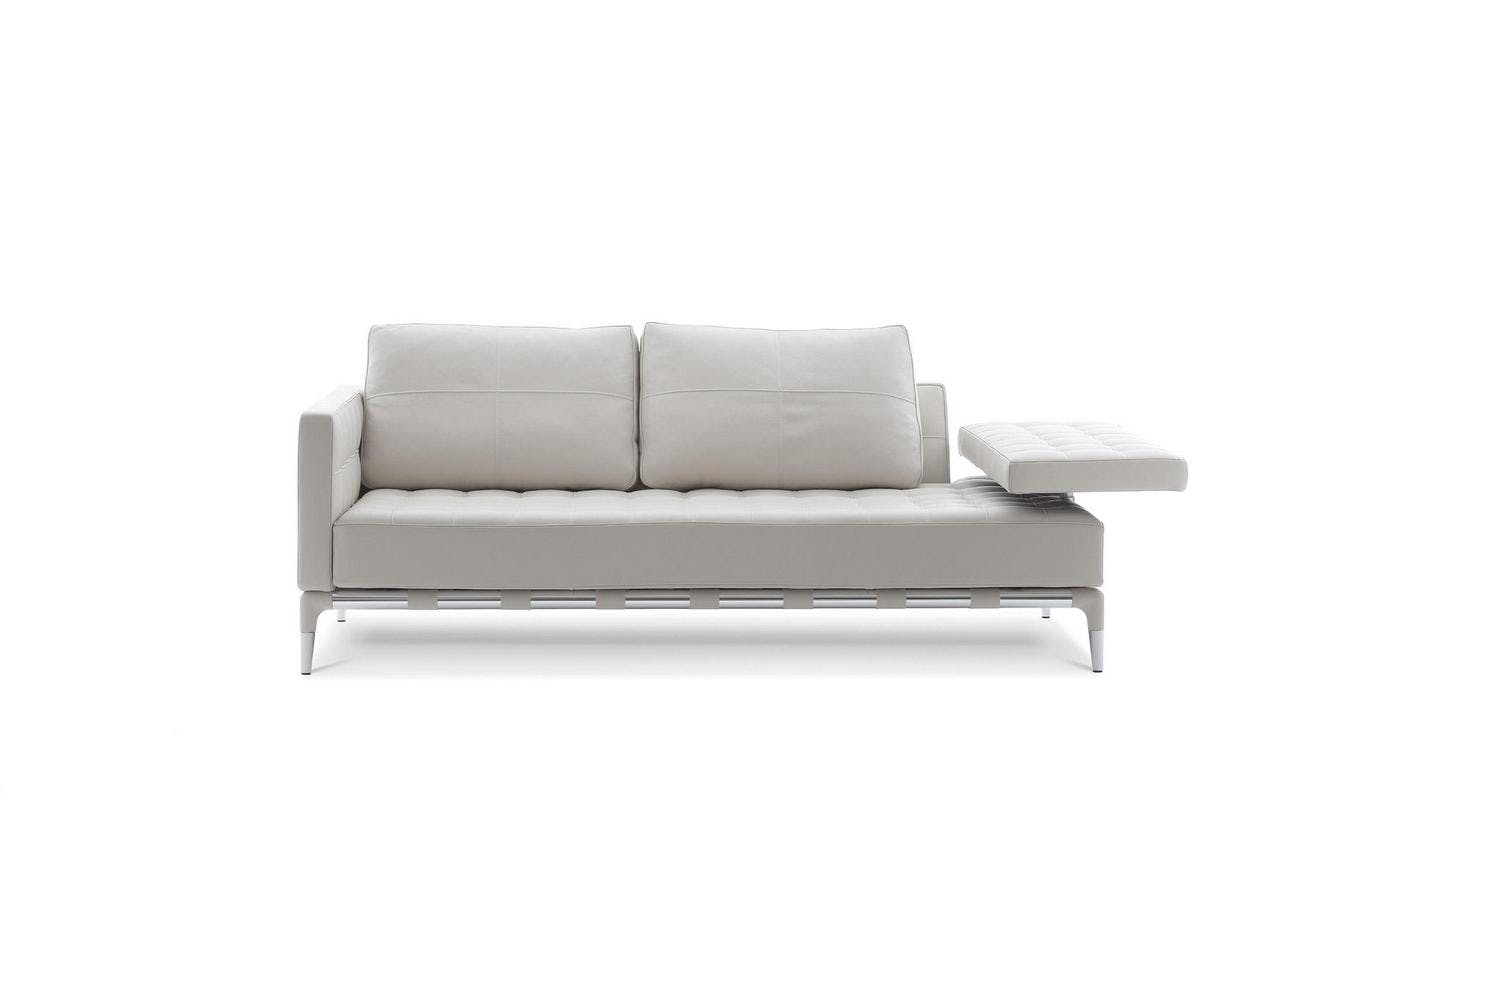 241 Prive Sofa By Philippe Starck For Cina